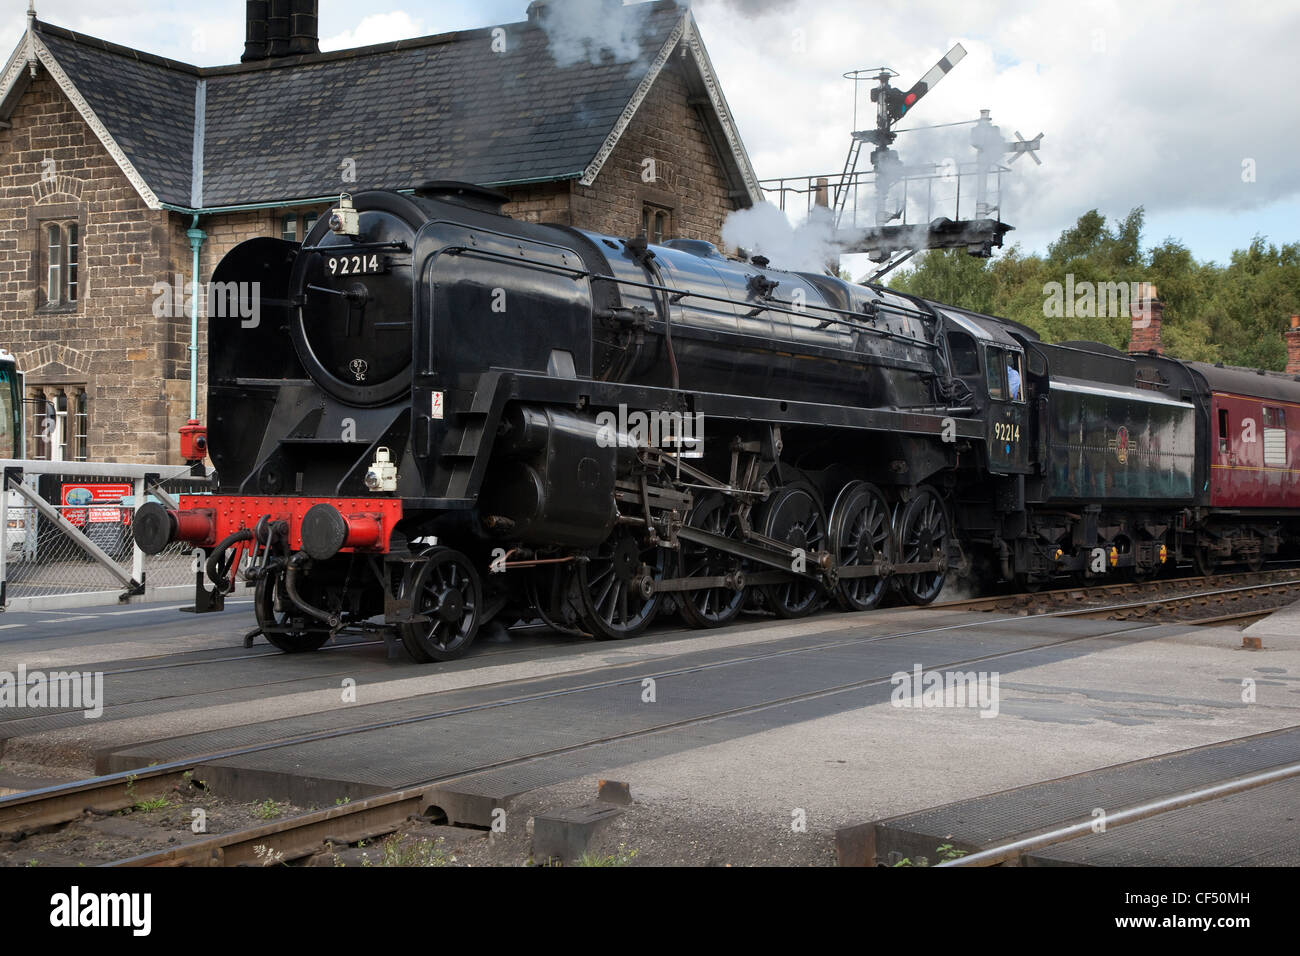 BR 2-10-0 Class 9F 92214 Steam Engine leaving Grosmont Station on the North York Moors Historic Railway. - Stock Image